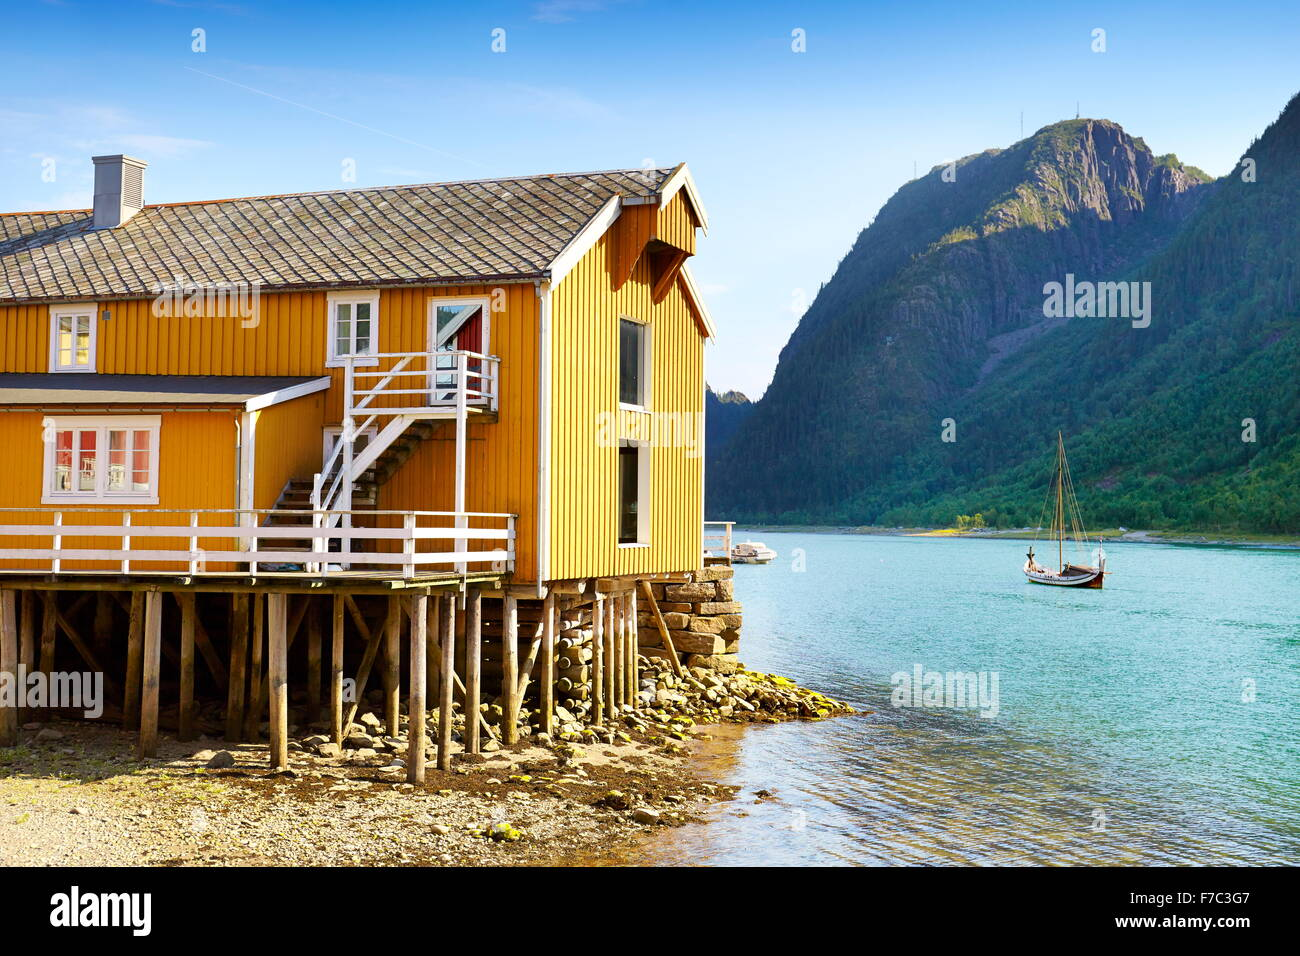 Traditional wooden stilt house, Mosjoen, Norway - Stock Image